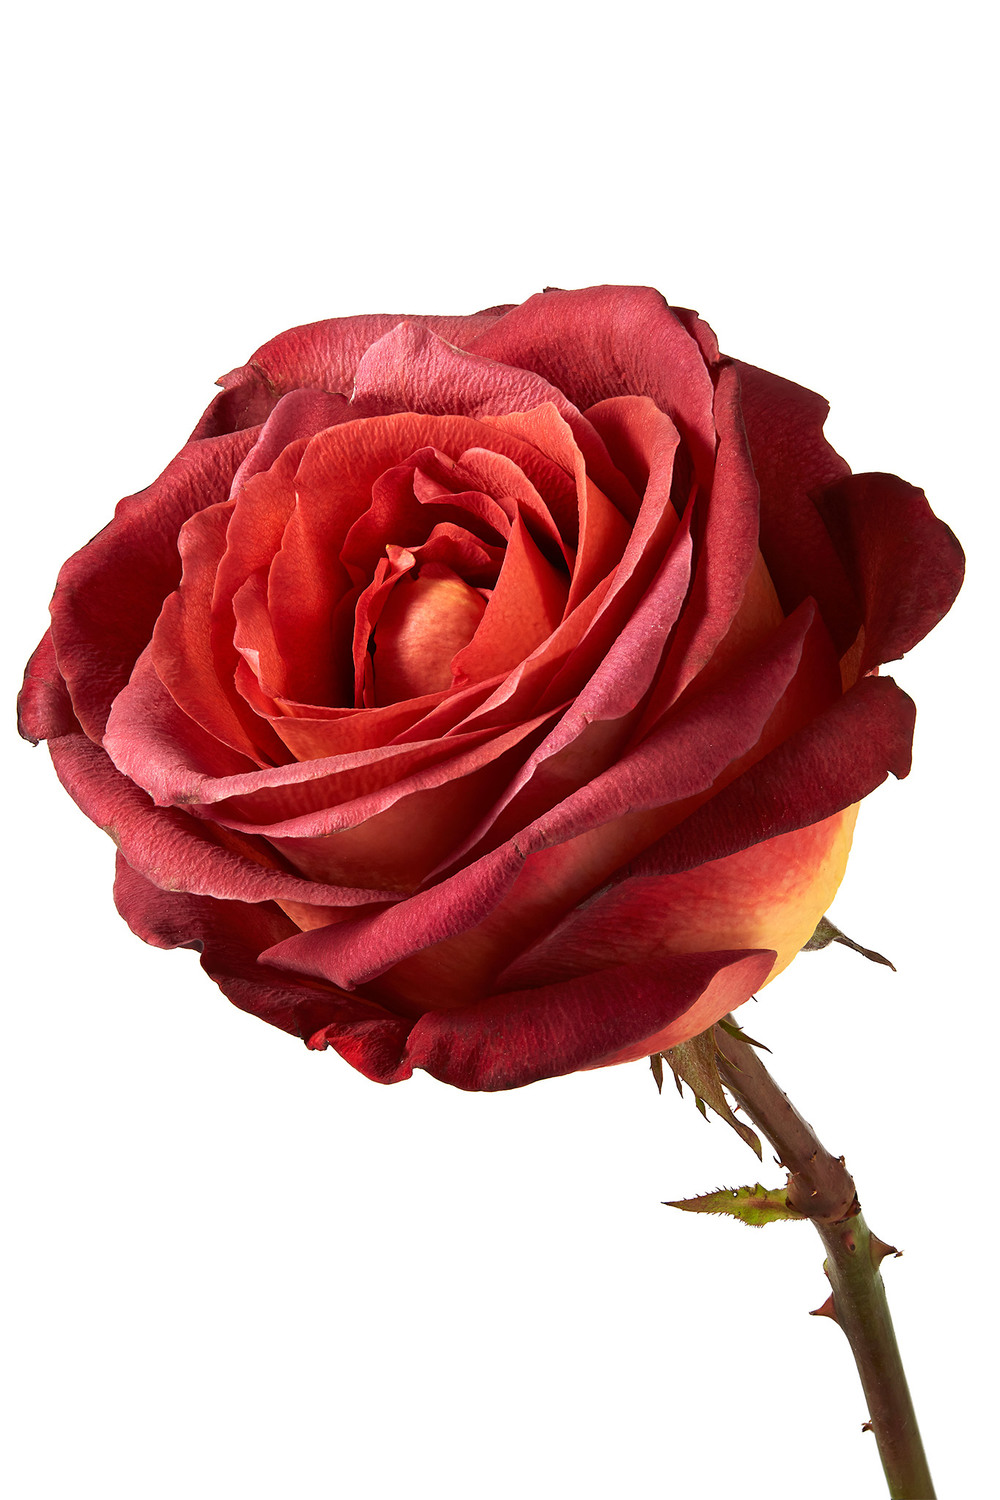 Columbian-Chocolate-Rose.jpg